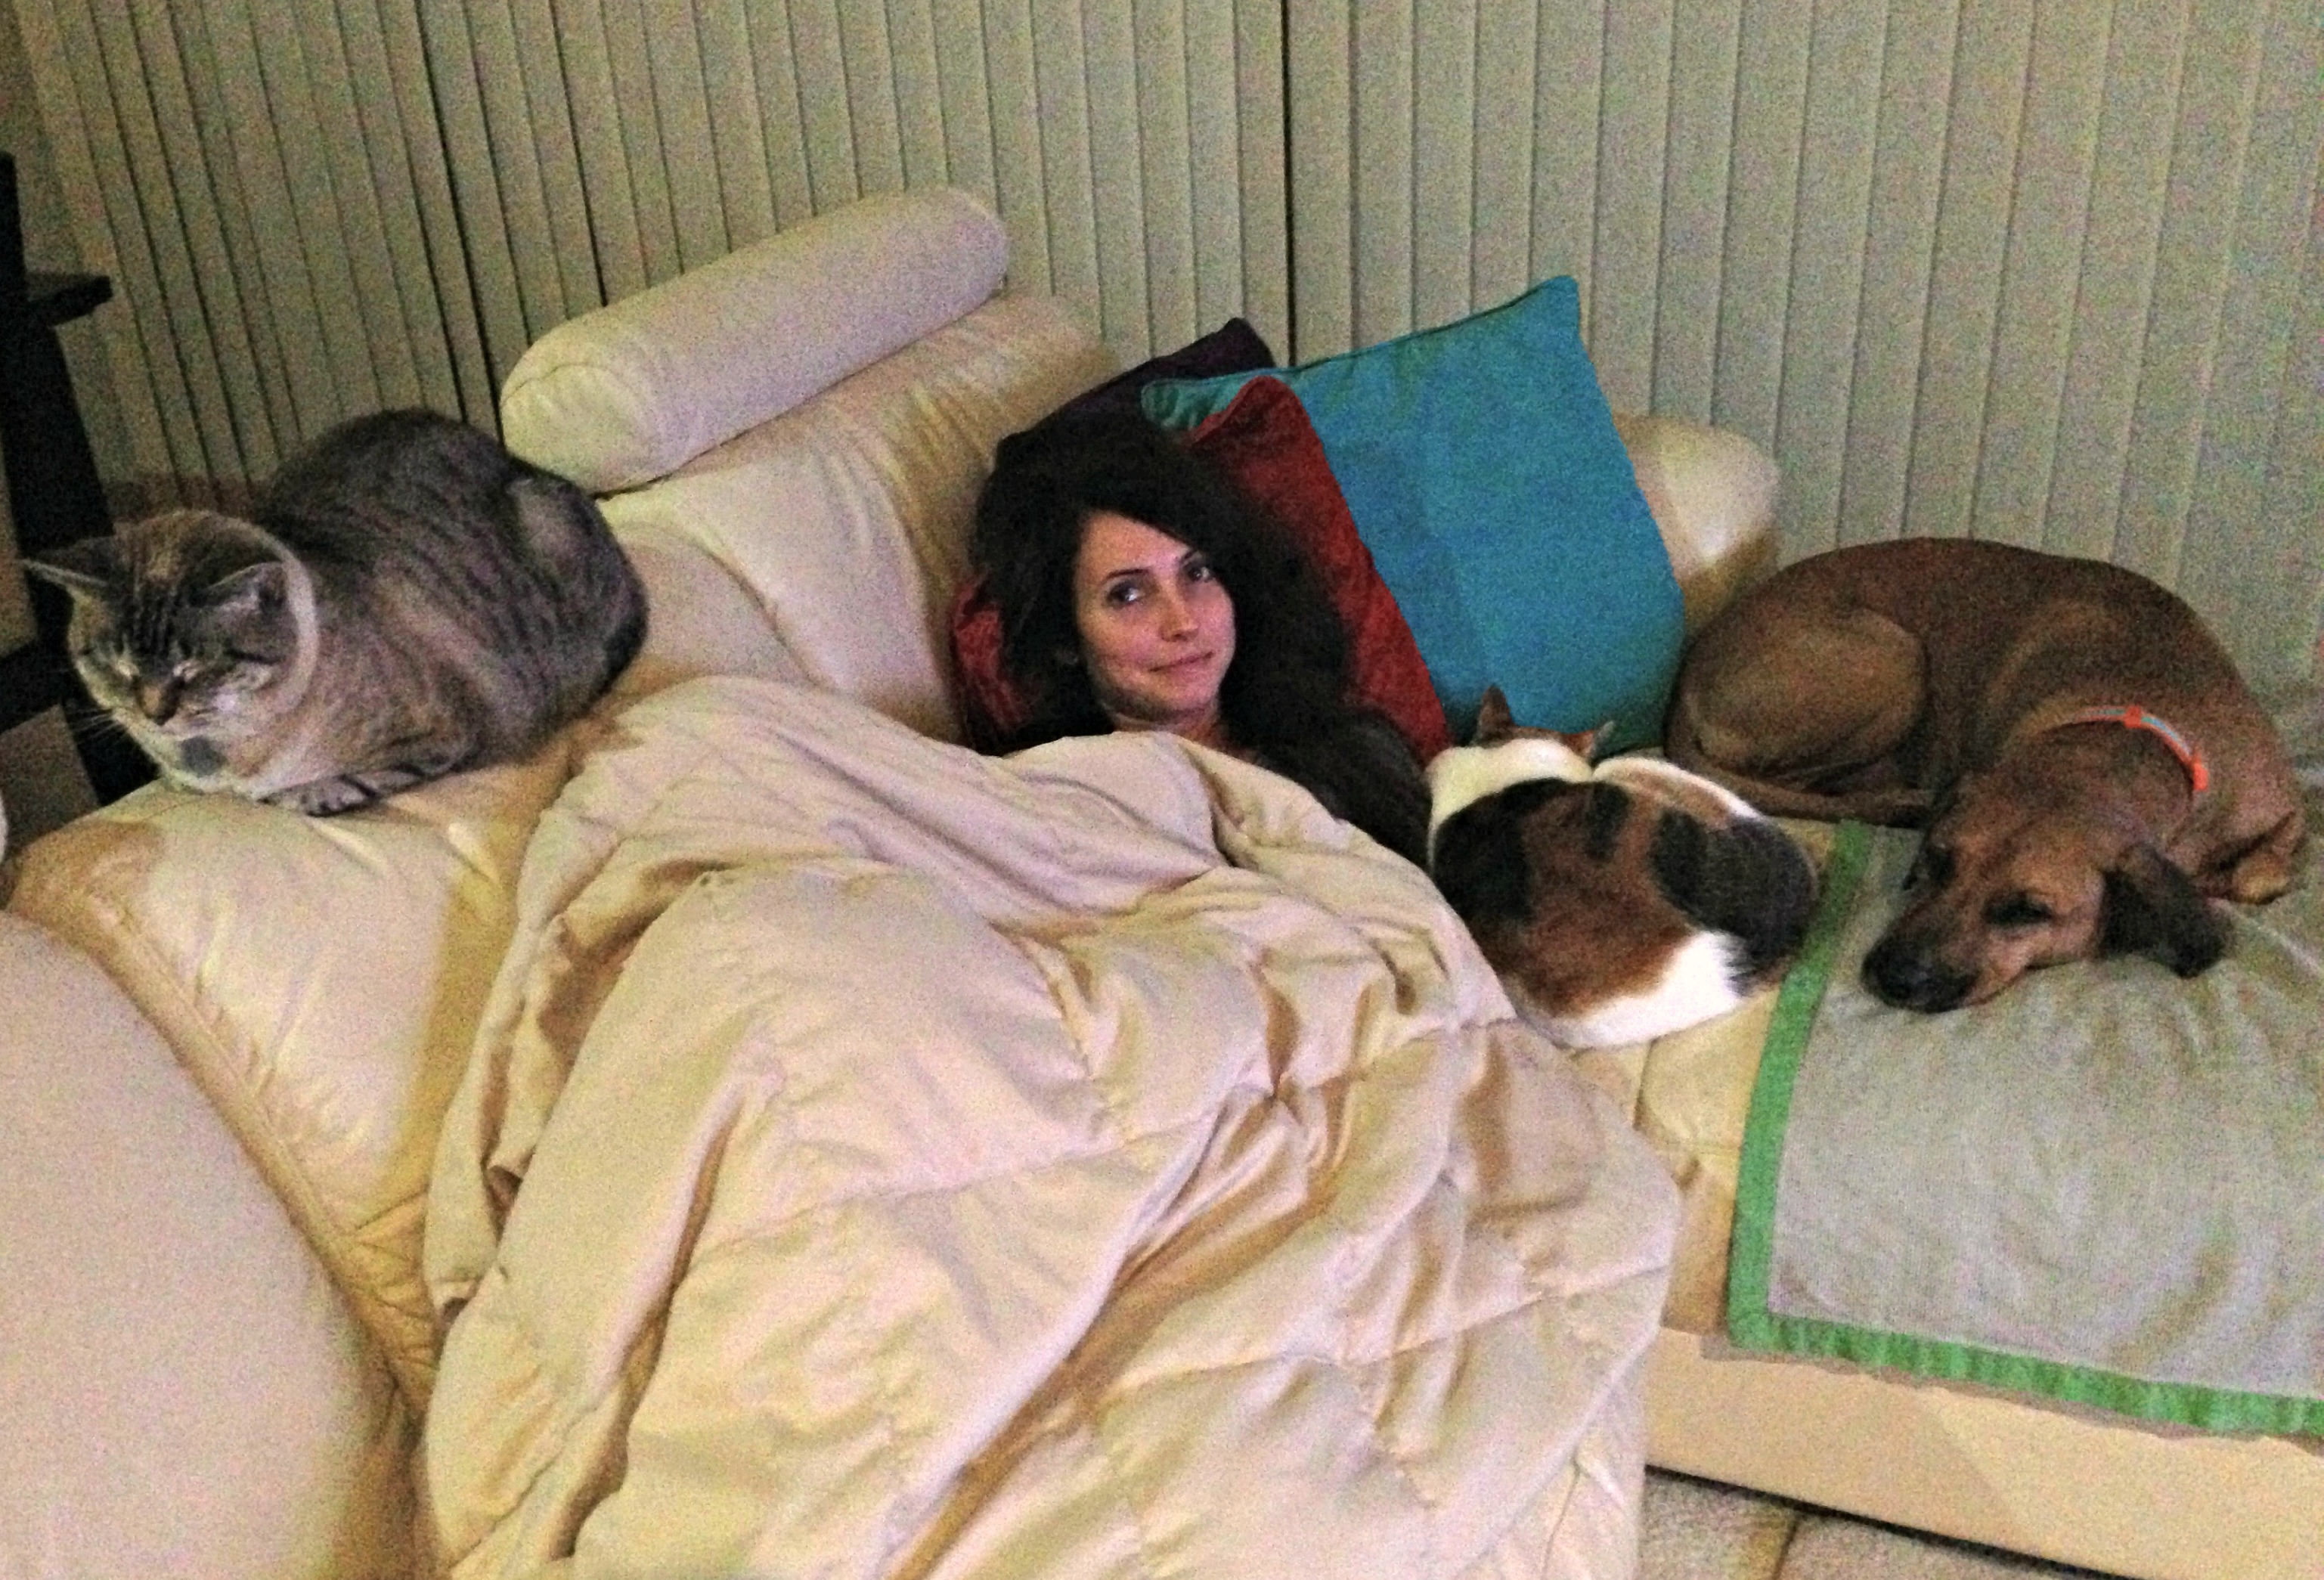 relaxing on couch with pets